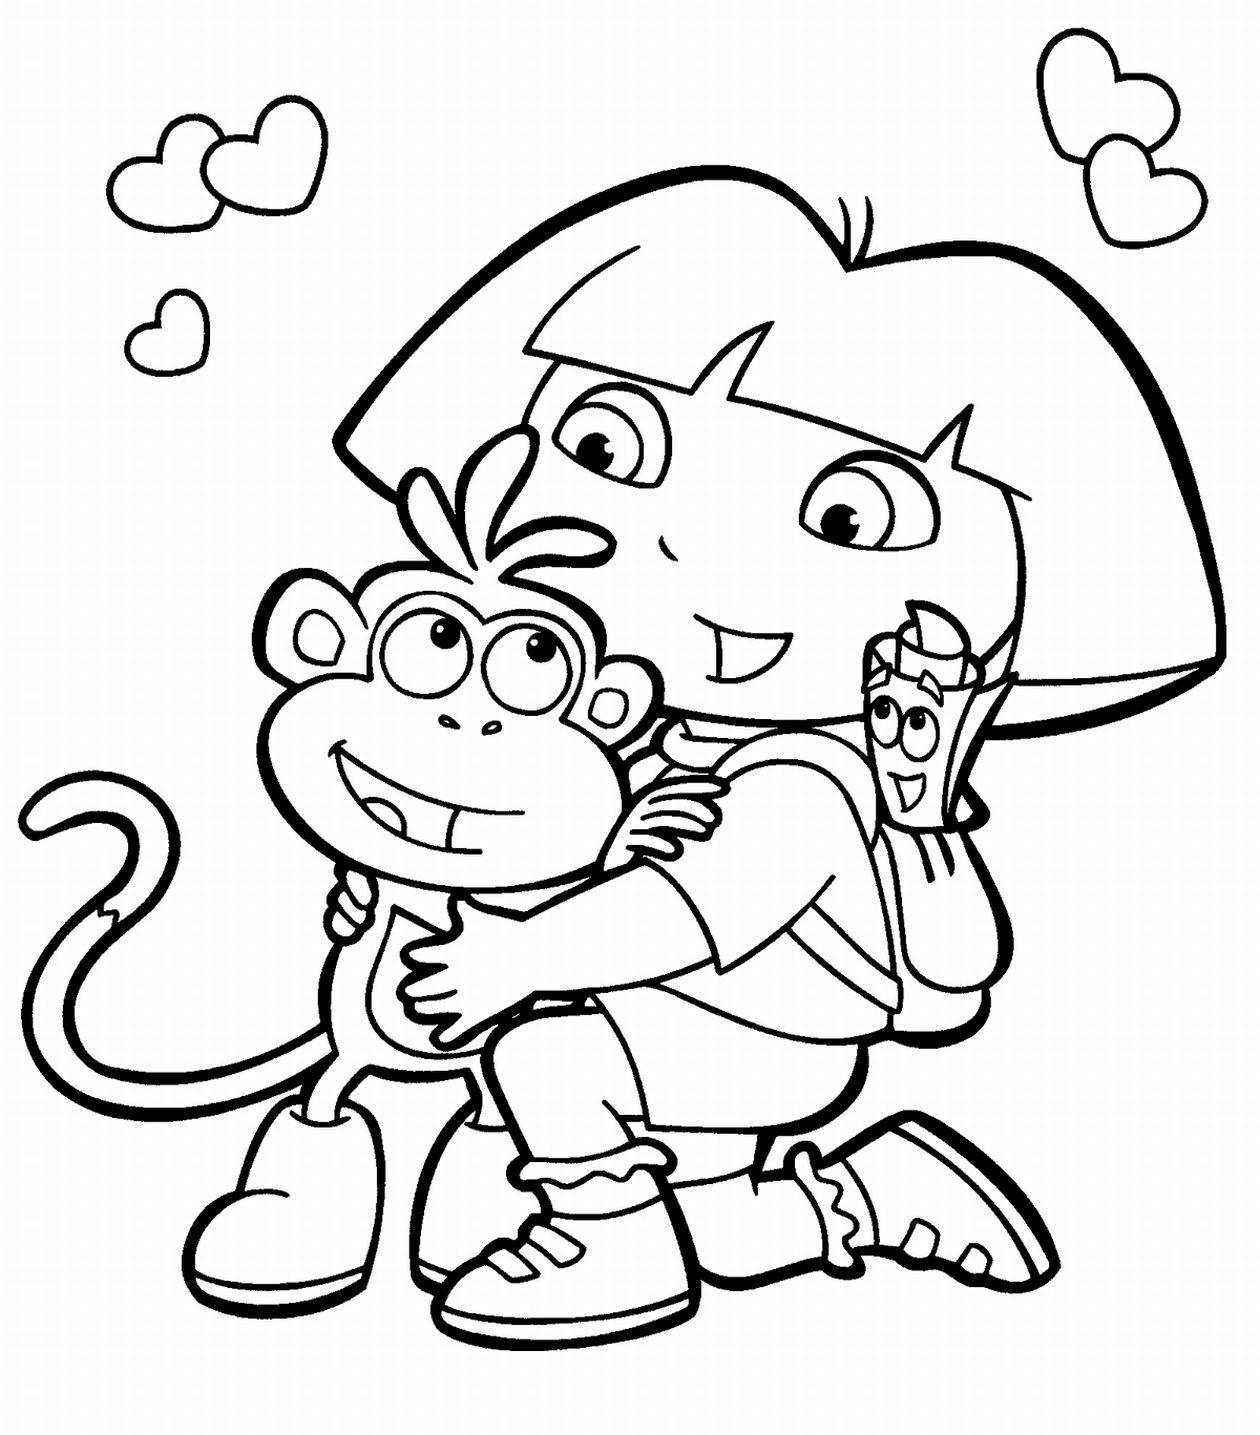 Free printable coloring pages for kids only coloring pages for Free printable cartoon coloring pages